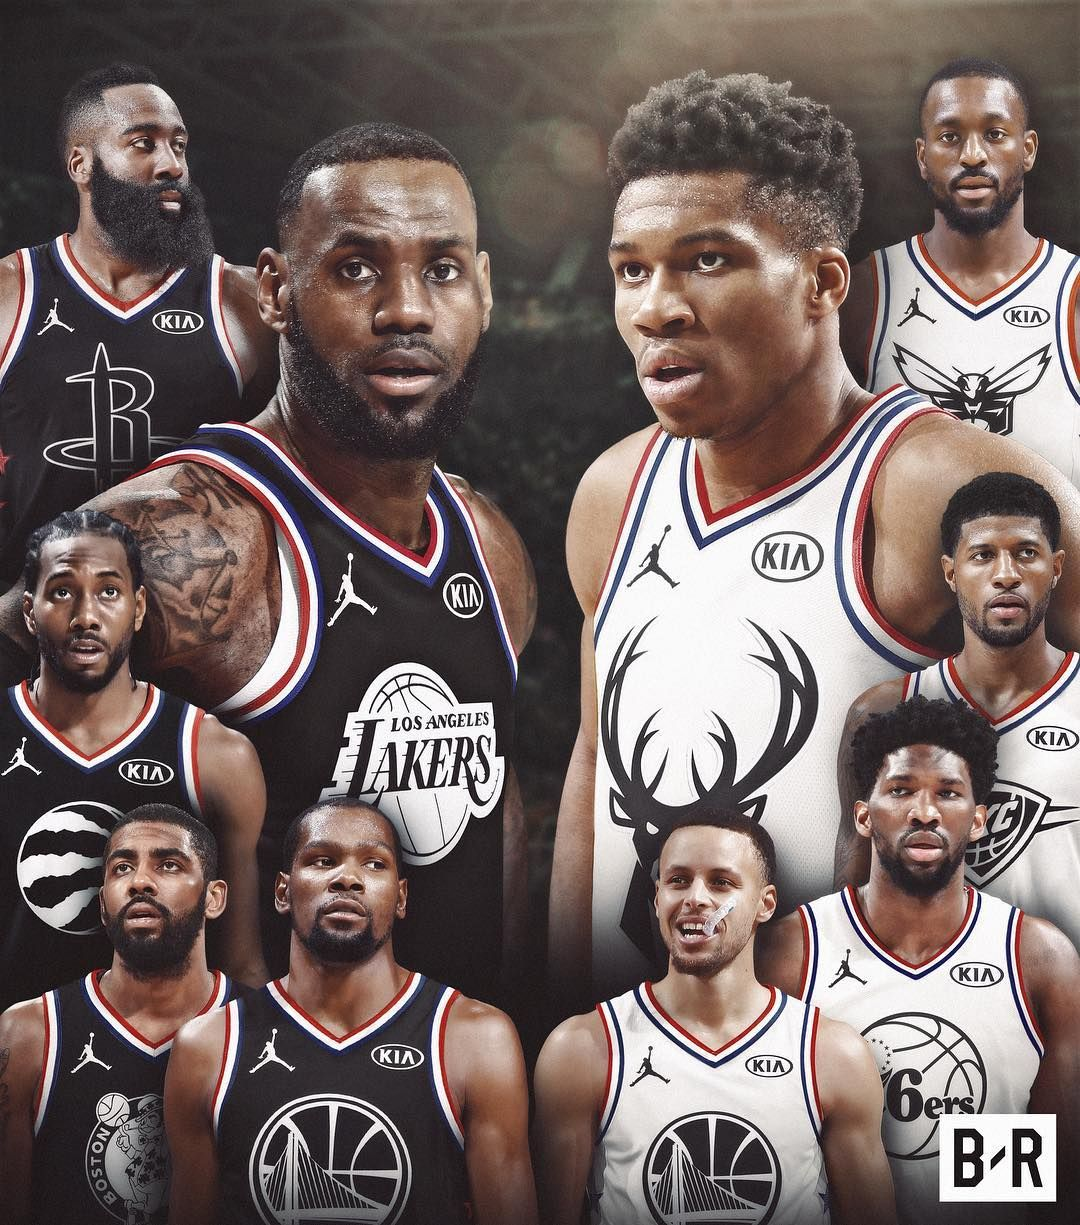 Team Bron Or Team Giannis Pinterest Adc Nba Pictures Best Nba